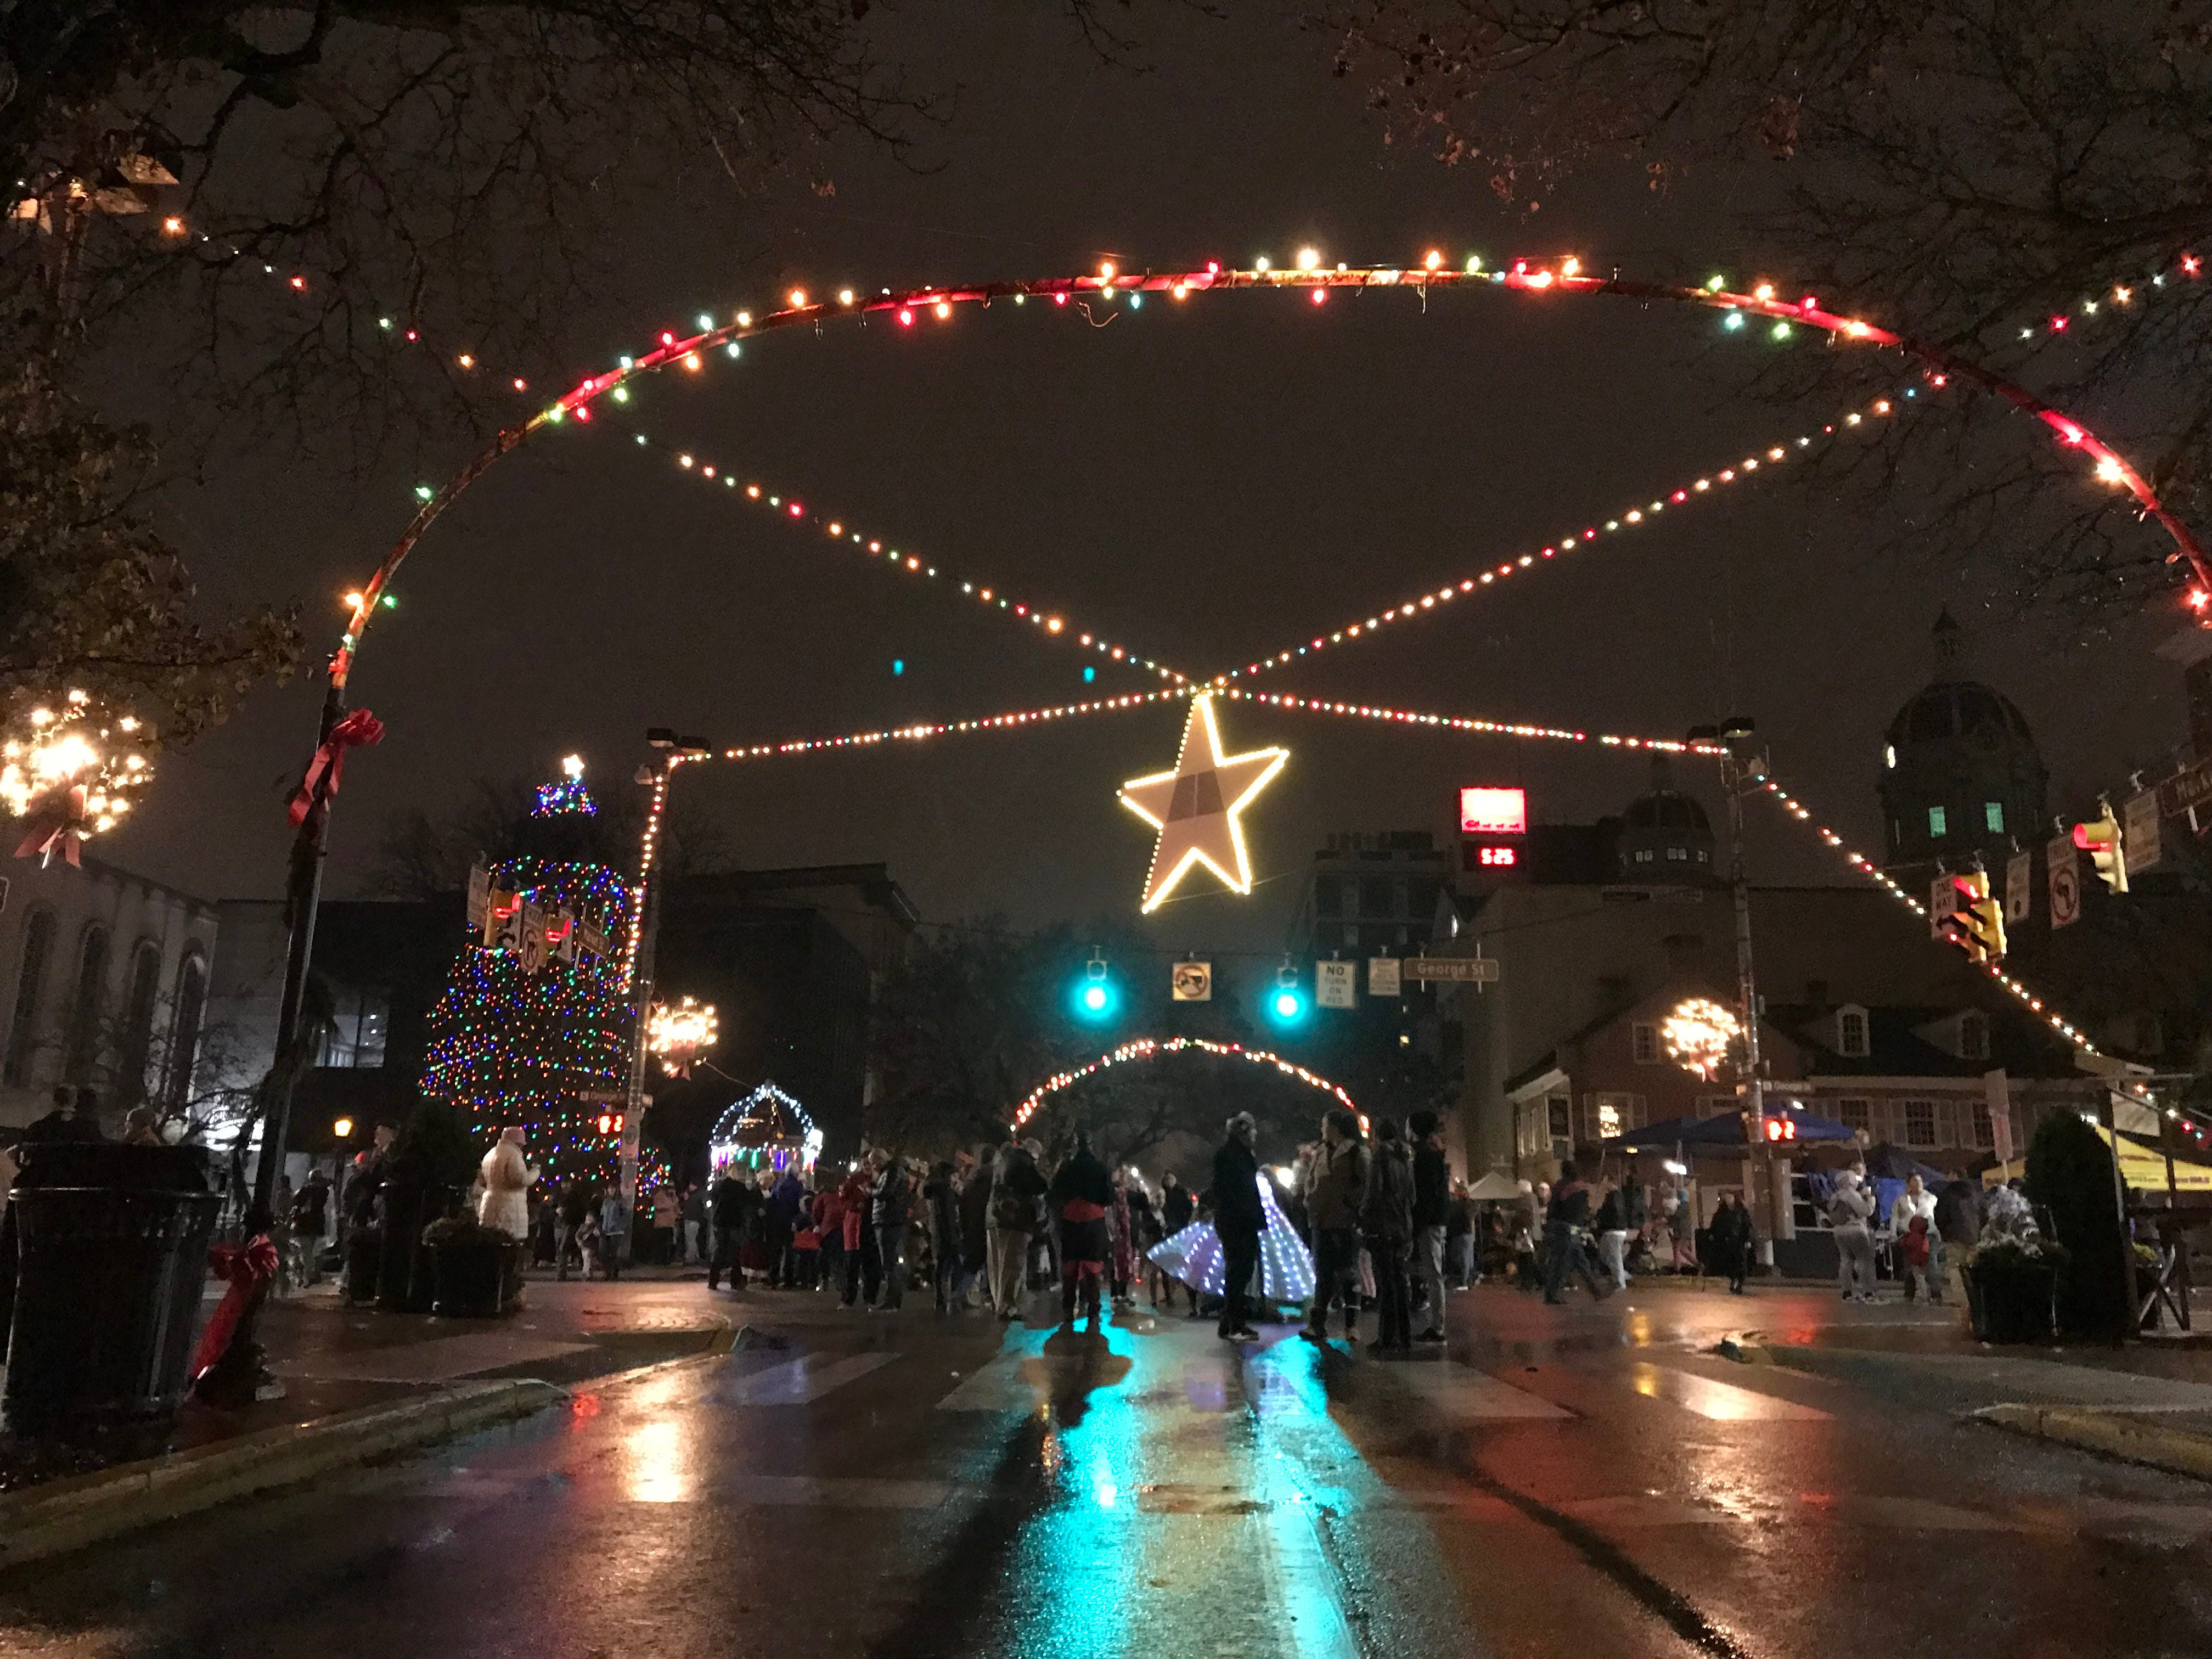 Downtown York during Light Up York on Saturday, Dec. 1, 2018.